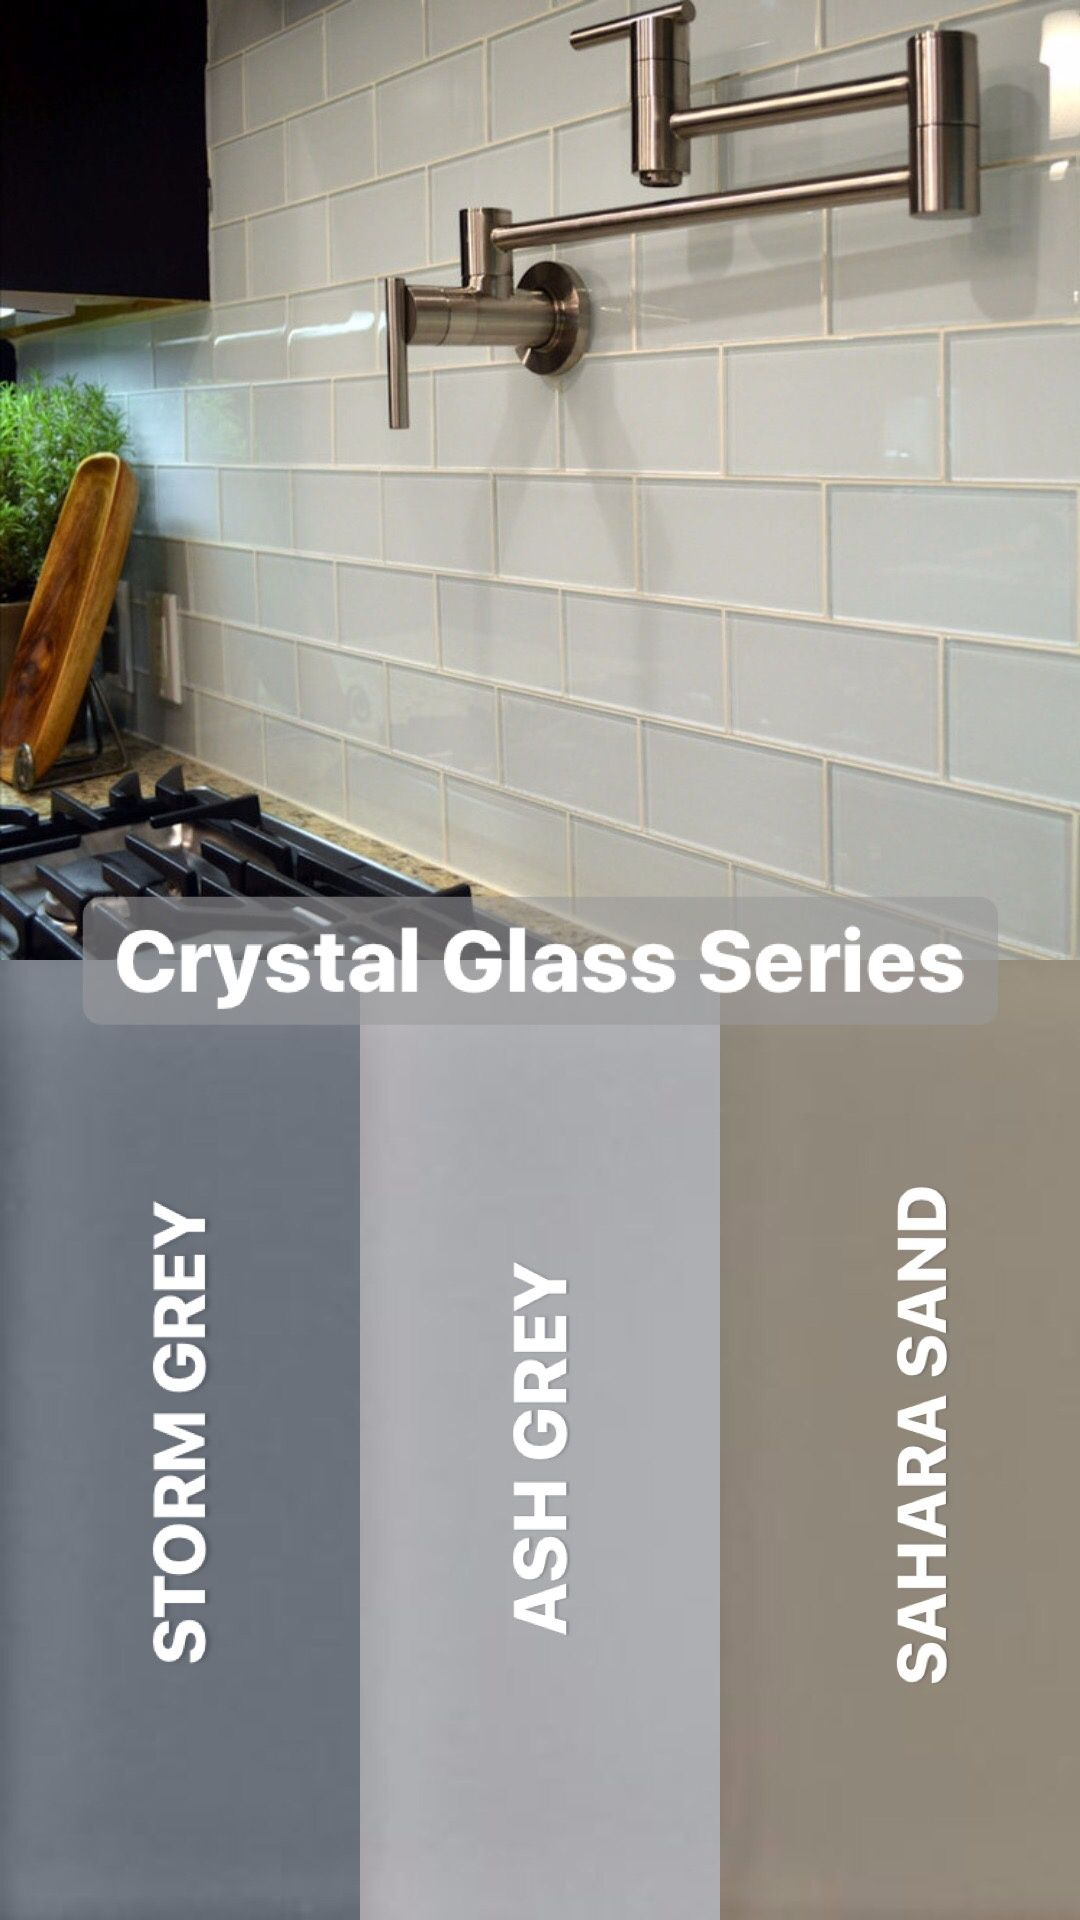 Myrtc Idea Gallery Glass Subway Tile Backsplash Crystal Glass